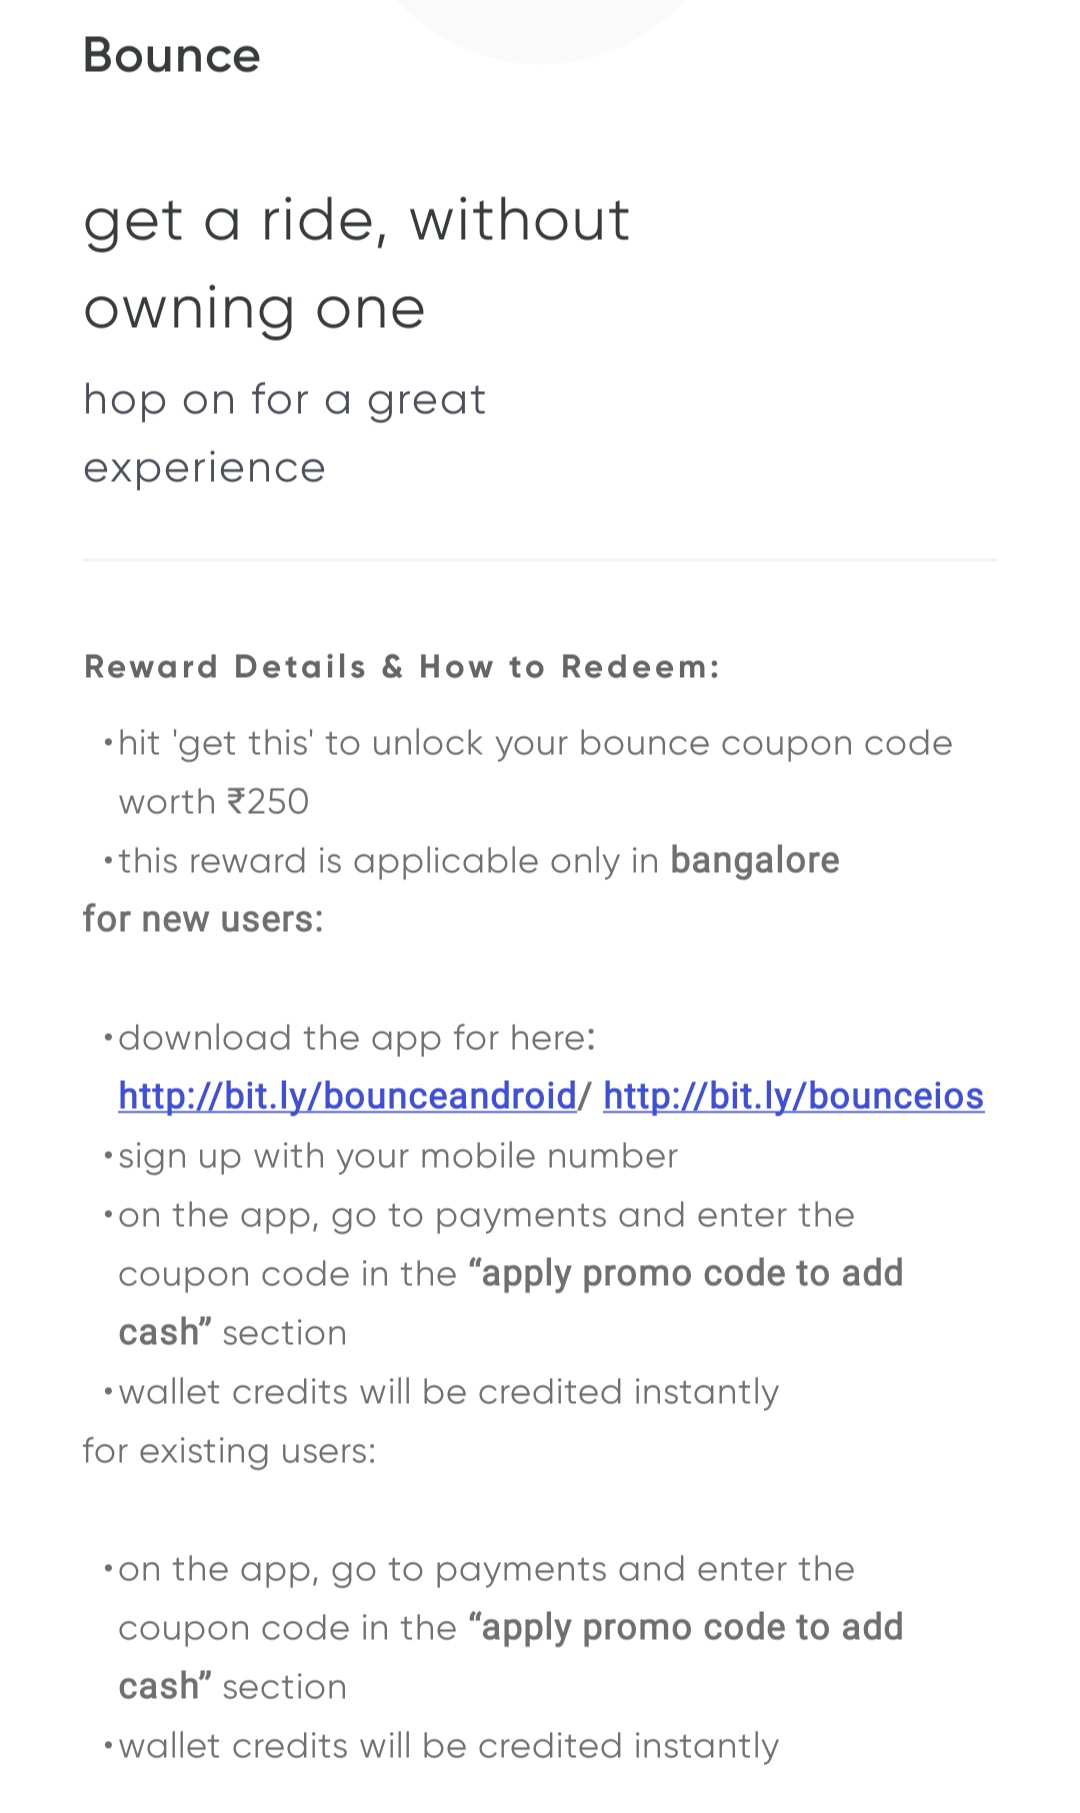 Cred - Burn 5000 coins to get ₹250 off on Bounce bike